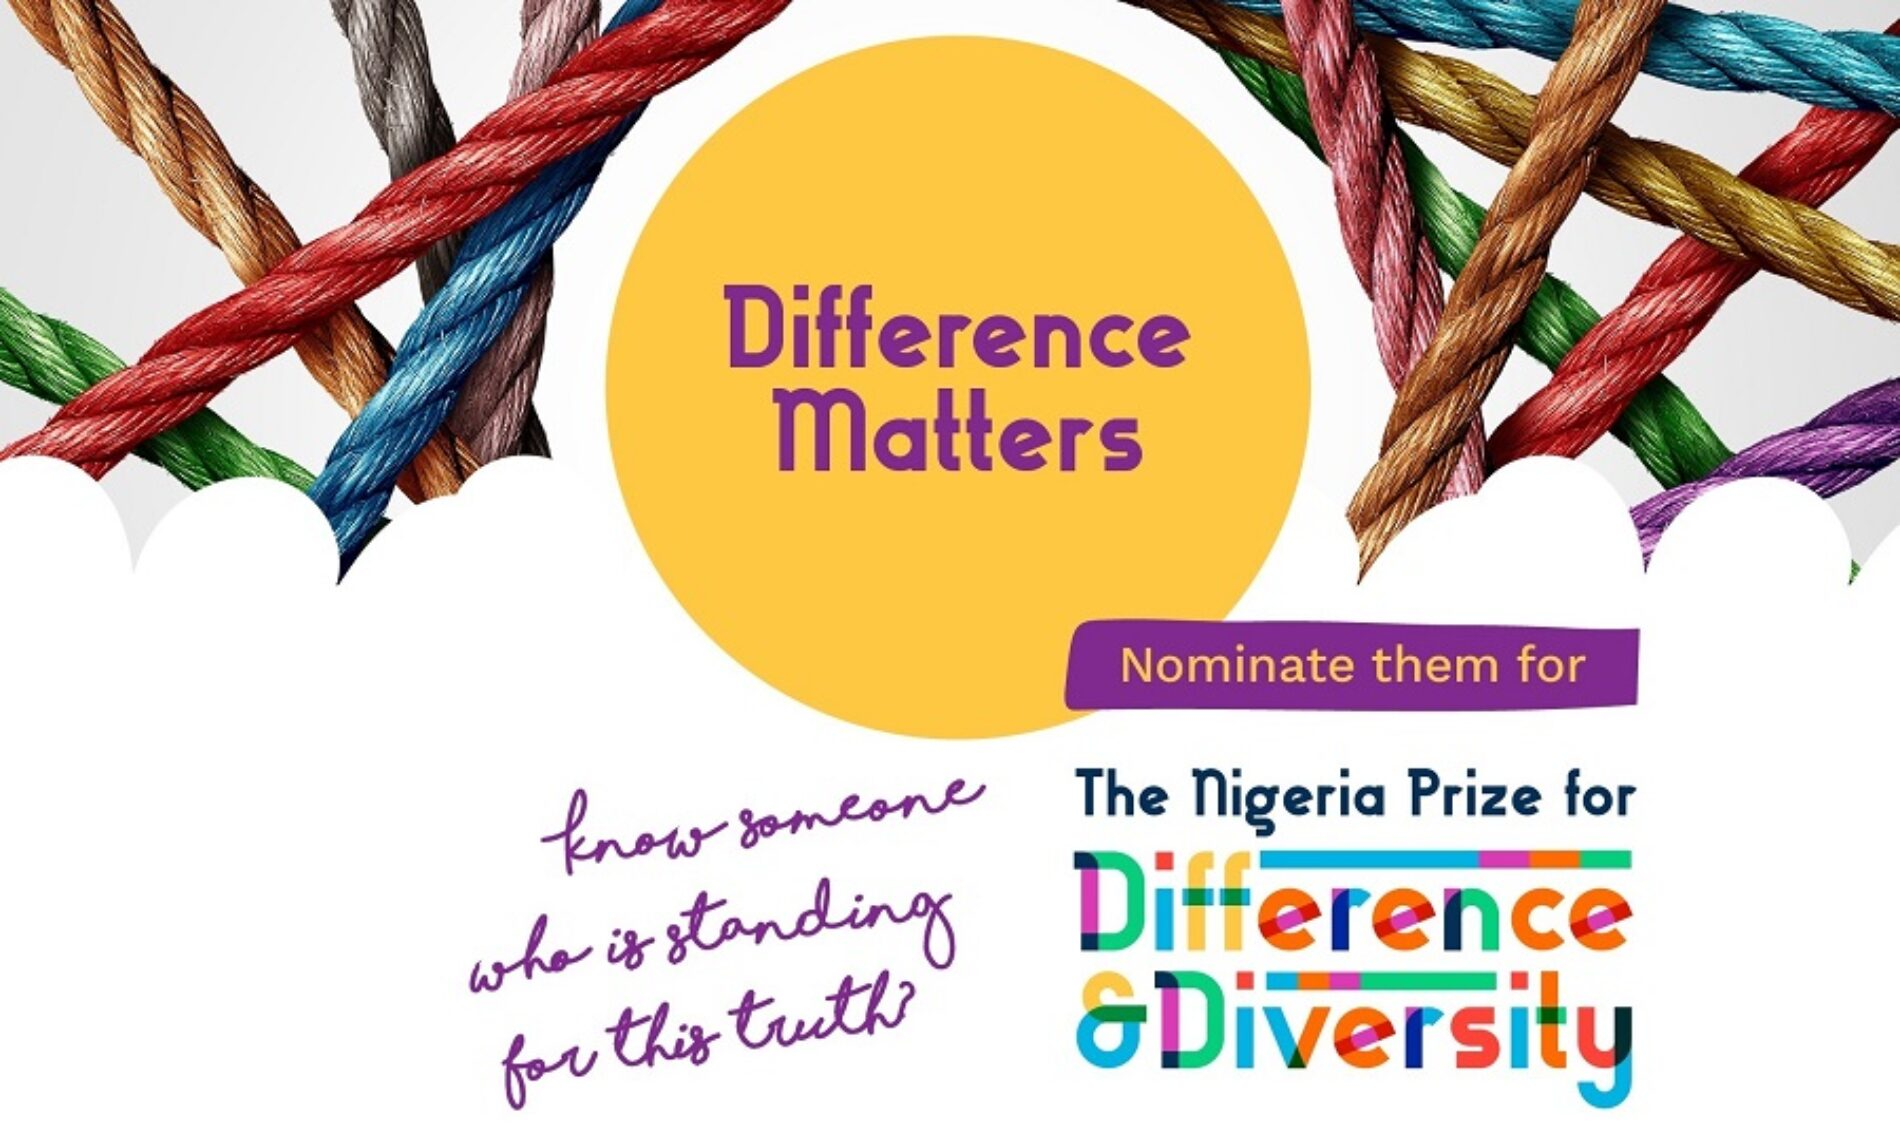 The Nigeria Prize for Difference & Diversity launches | You Can Nominate A Pioneer in this First edition to be endowed by Chude Jideonwo for N1 million